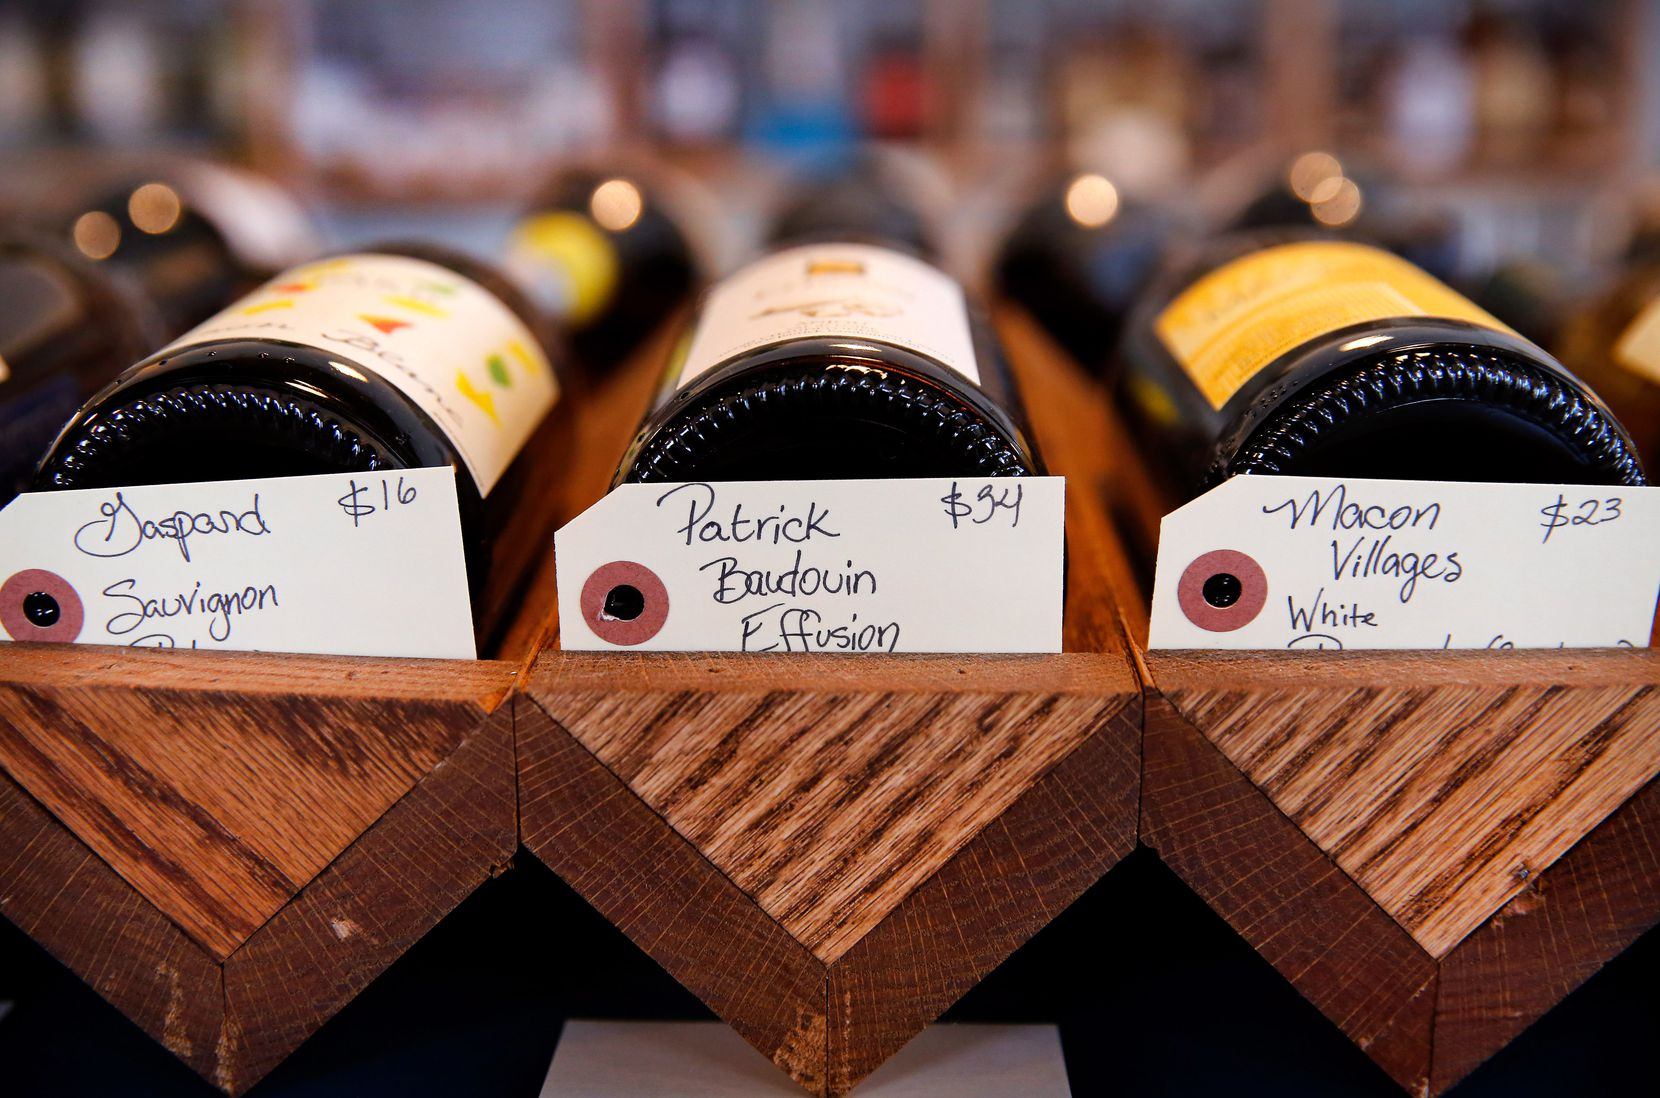 Natural wines for sale at Bar & Garden (Tom Fox/The Dallas Morning News)